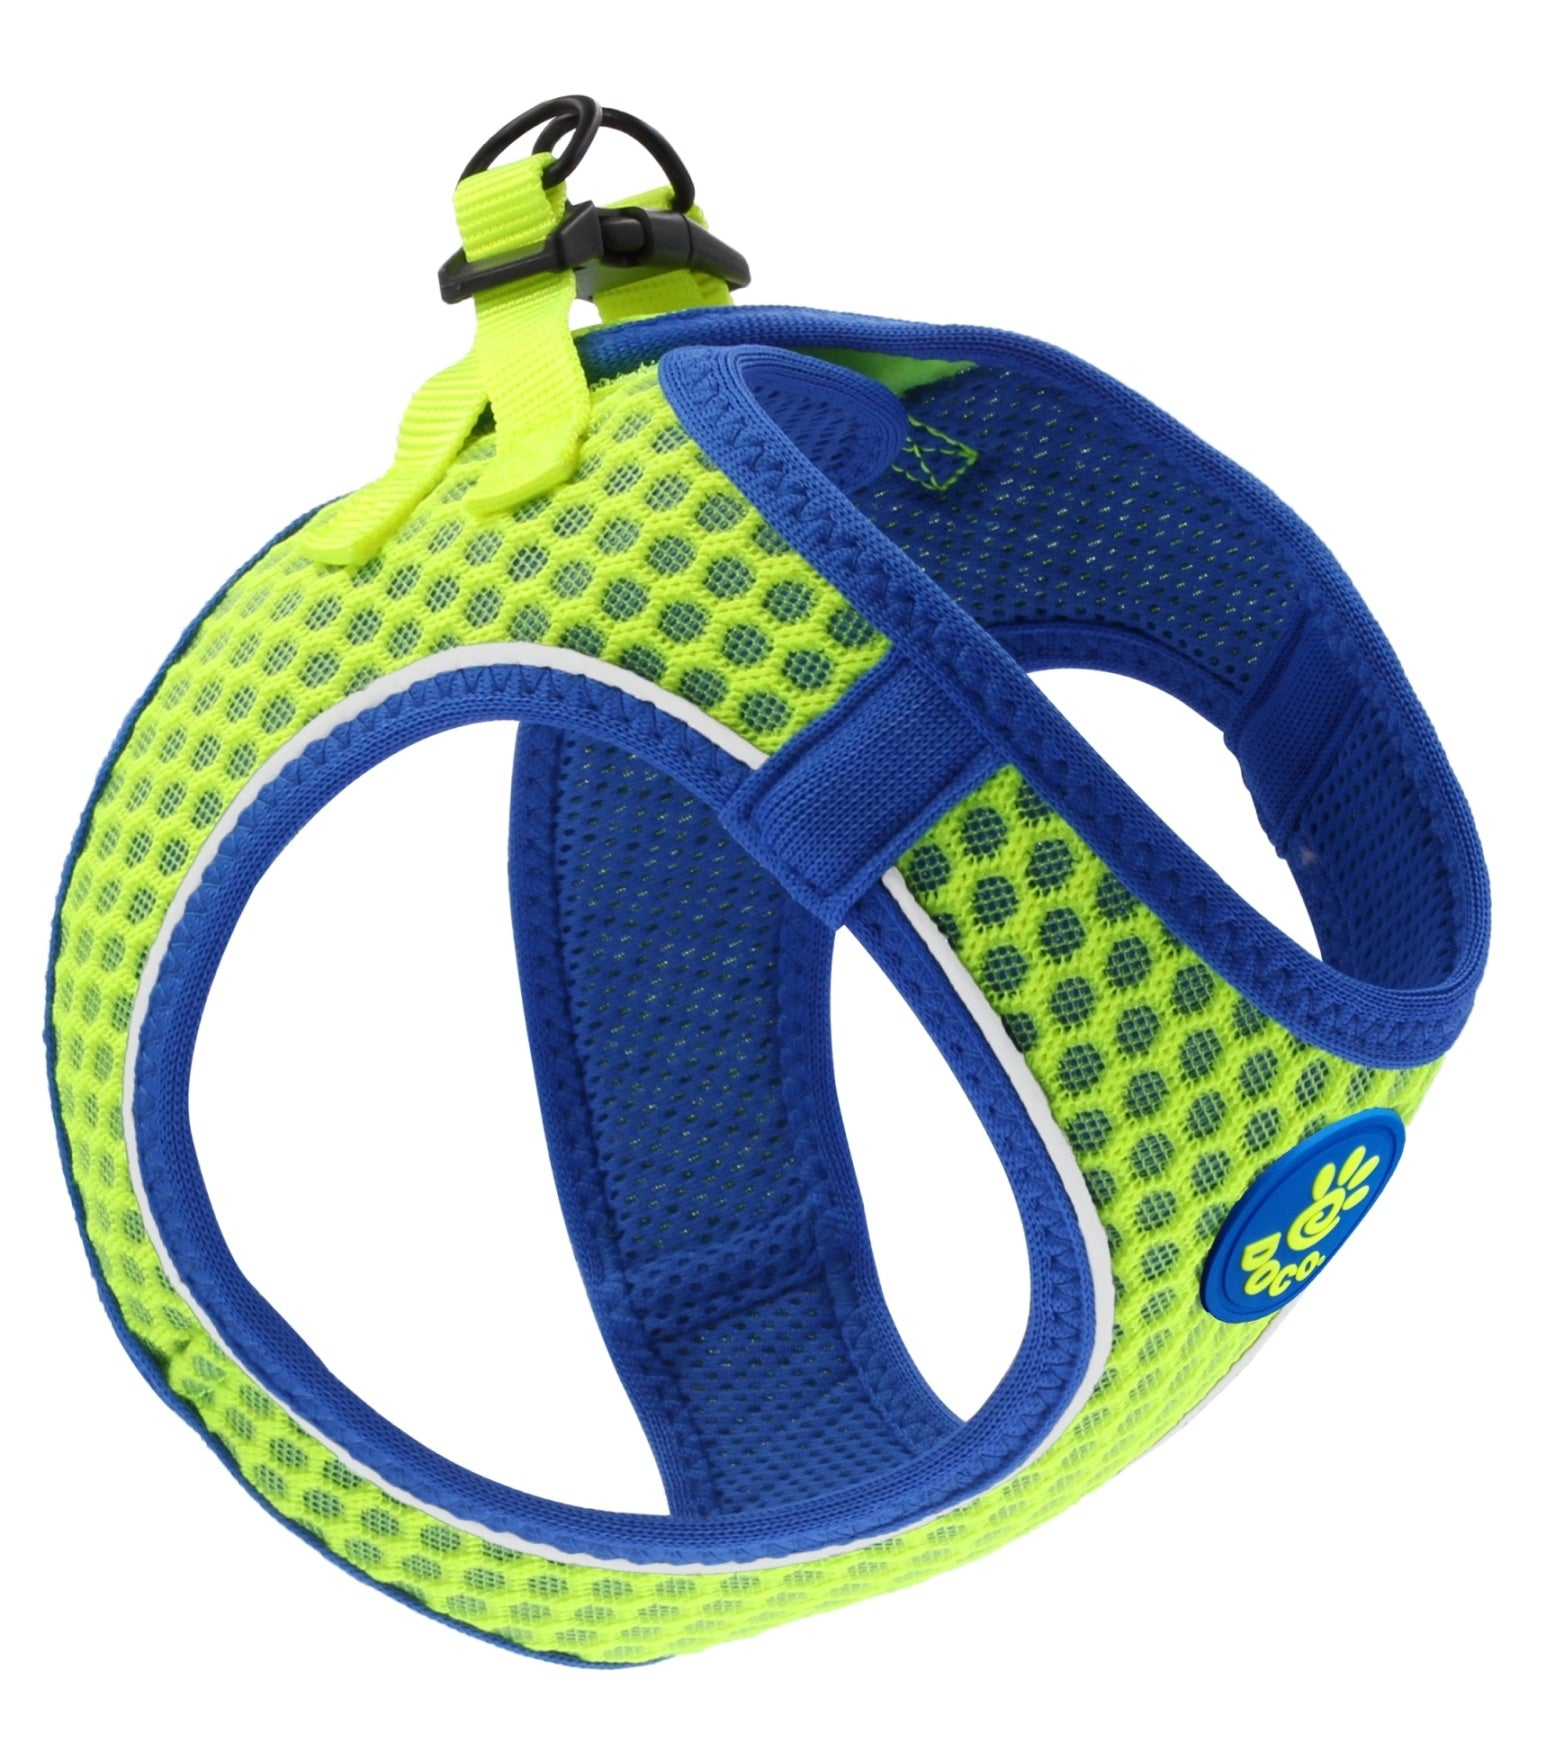 DOCO® Athletica Net mesh QUICK FIT Harness - www.docopet.com